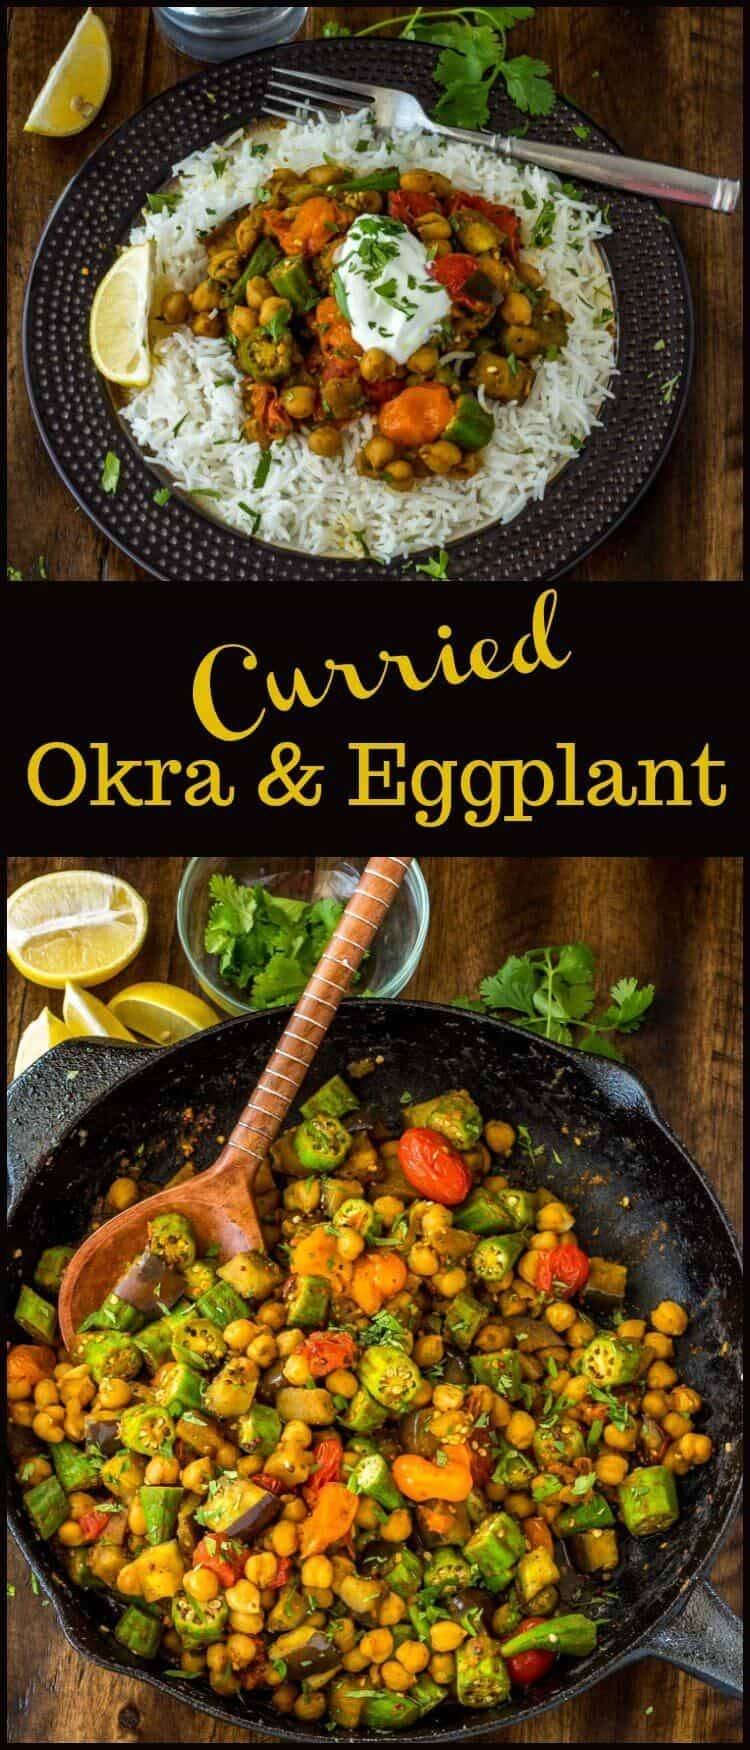 Curried Okra and Eggplant - Warm Indian spices give farm-fresh vegetables an exotic flavor in this quick and healthy dish! Curried Okra and Eggplant incorporates approachable Indian curry cooking methods with farm-fresh veggies and protein and fiber rich chick peas for a healthy vegetarian meal served with rice or a tasty side dish with grilled fish or chicken. Vegan | Gluten Free | Indian Cuisine | curry